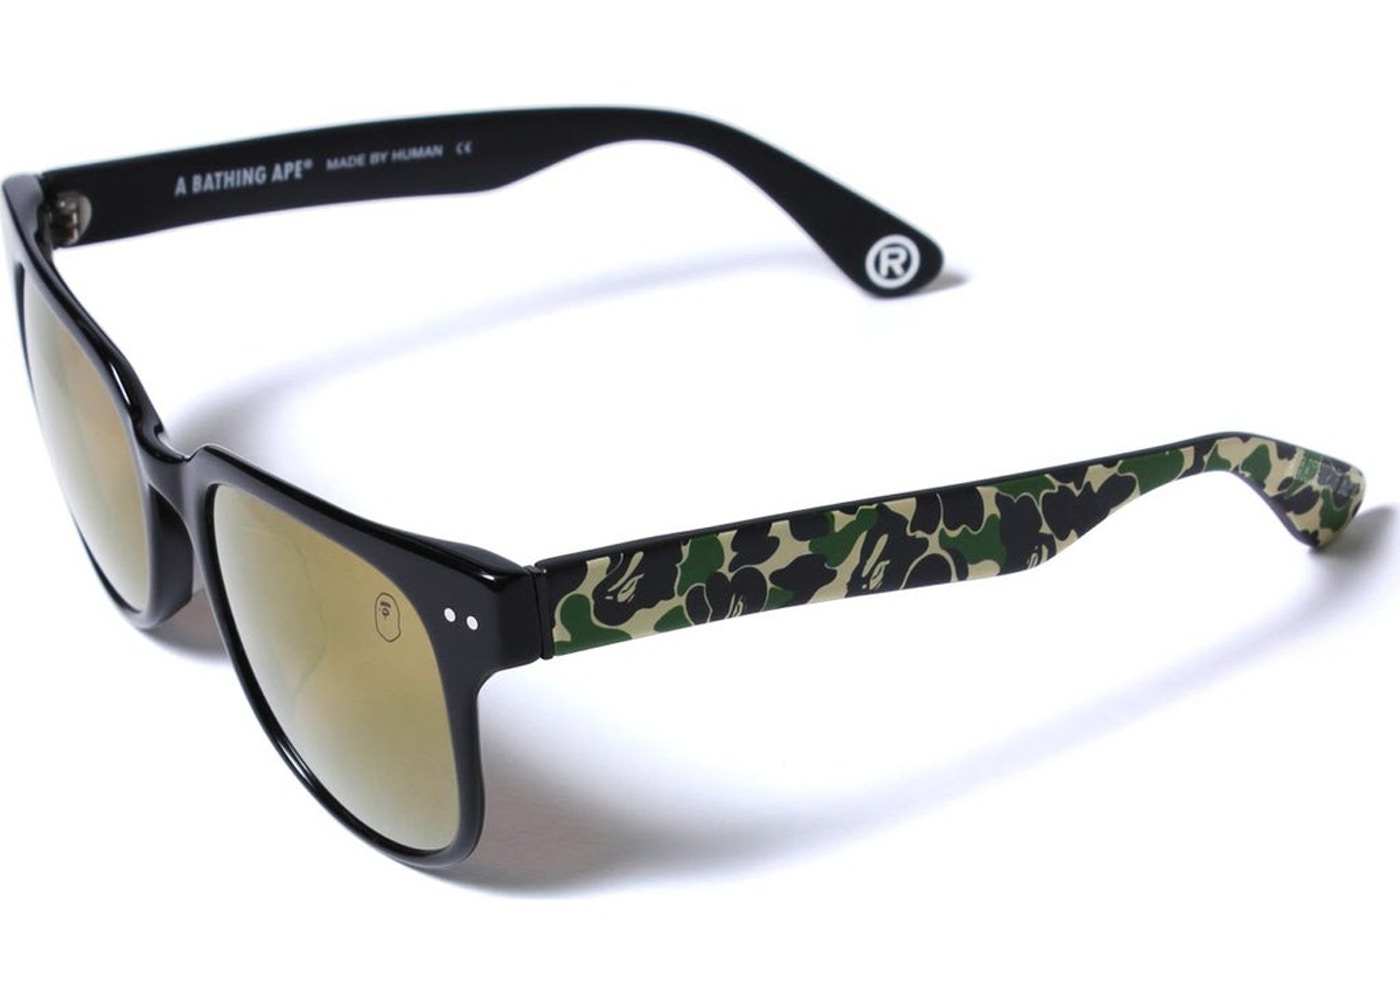 1fcadce8a8 BAPE Sunglasses 4 M Bs13046 Black Green. Sunglasses 4 M